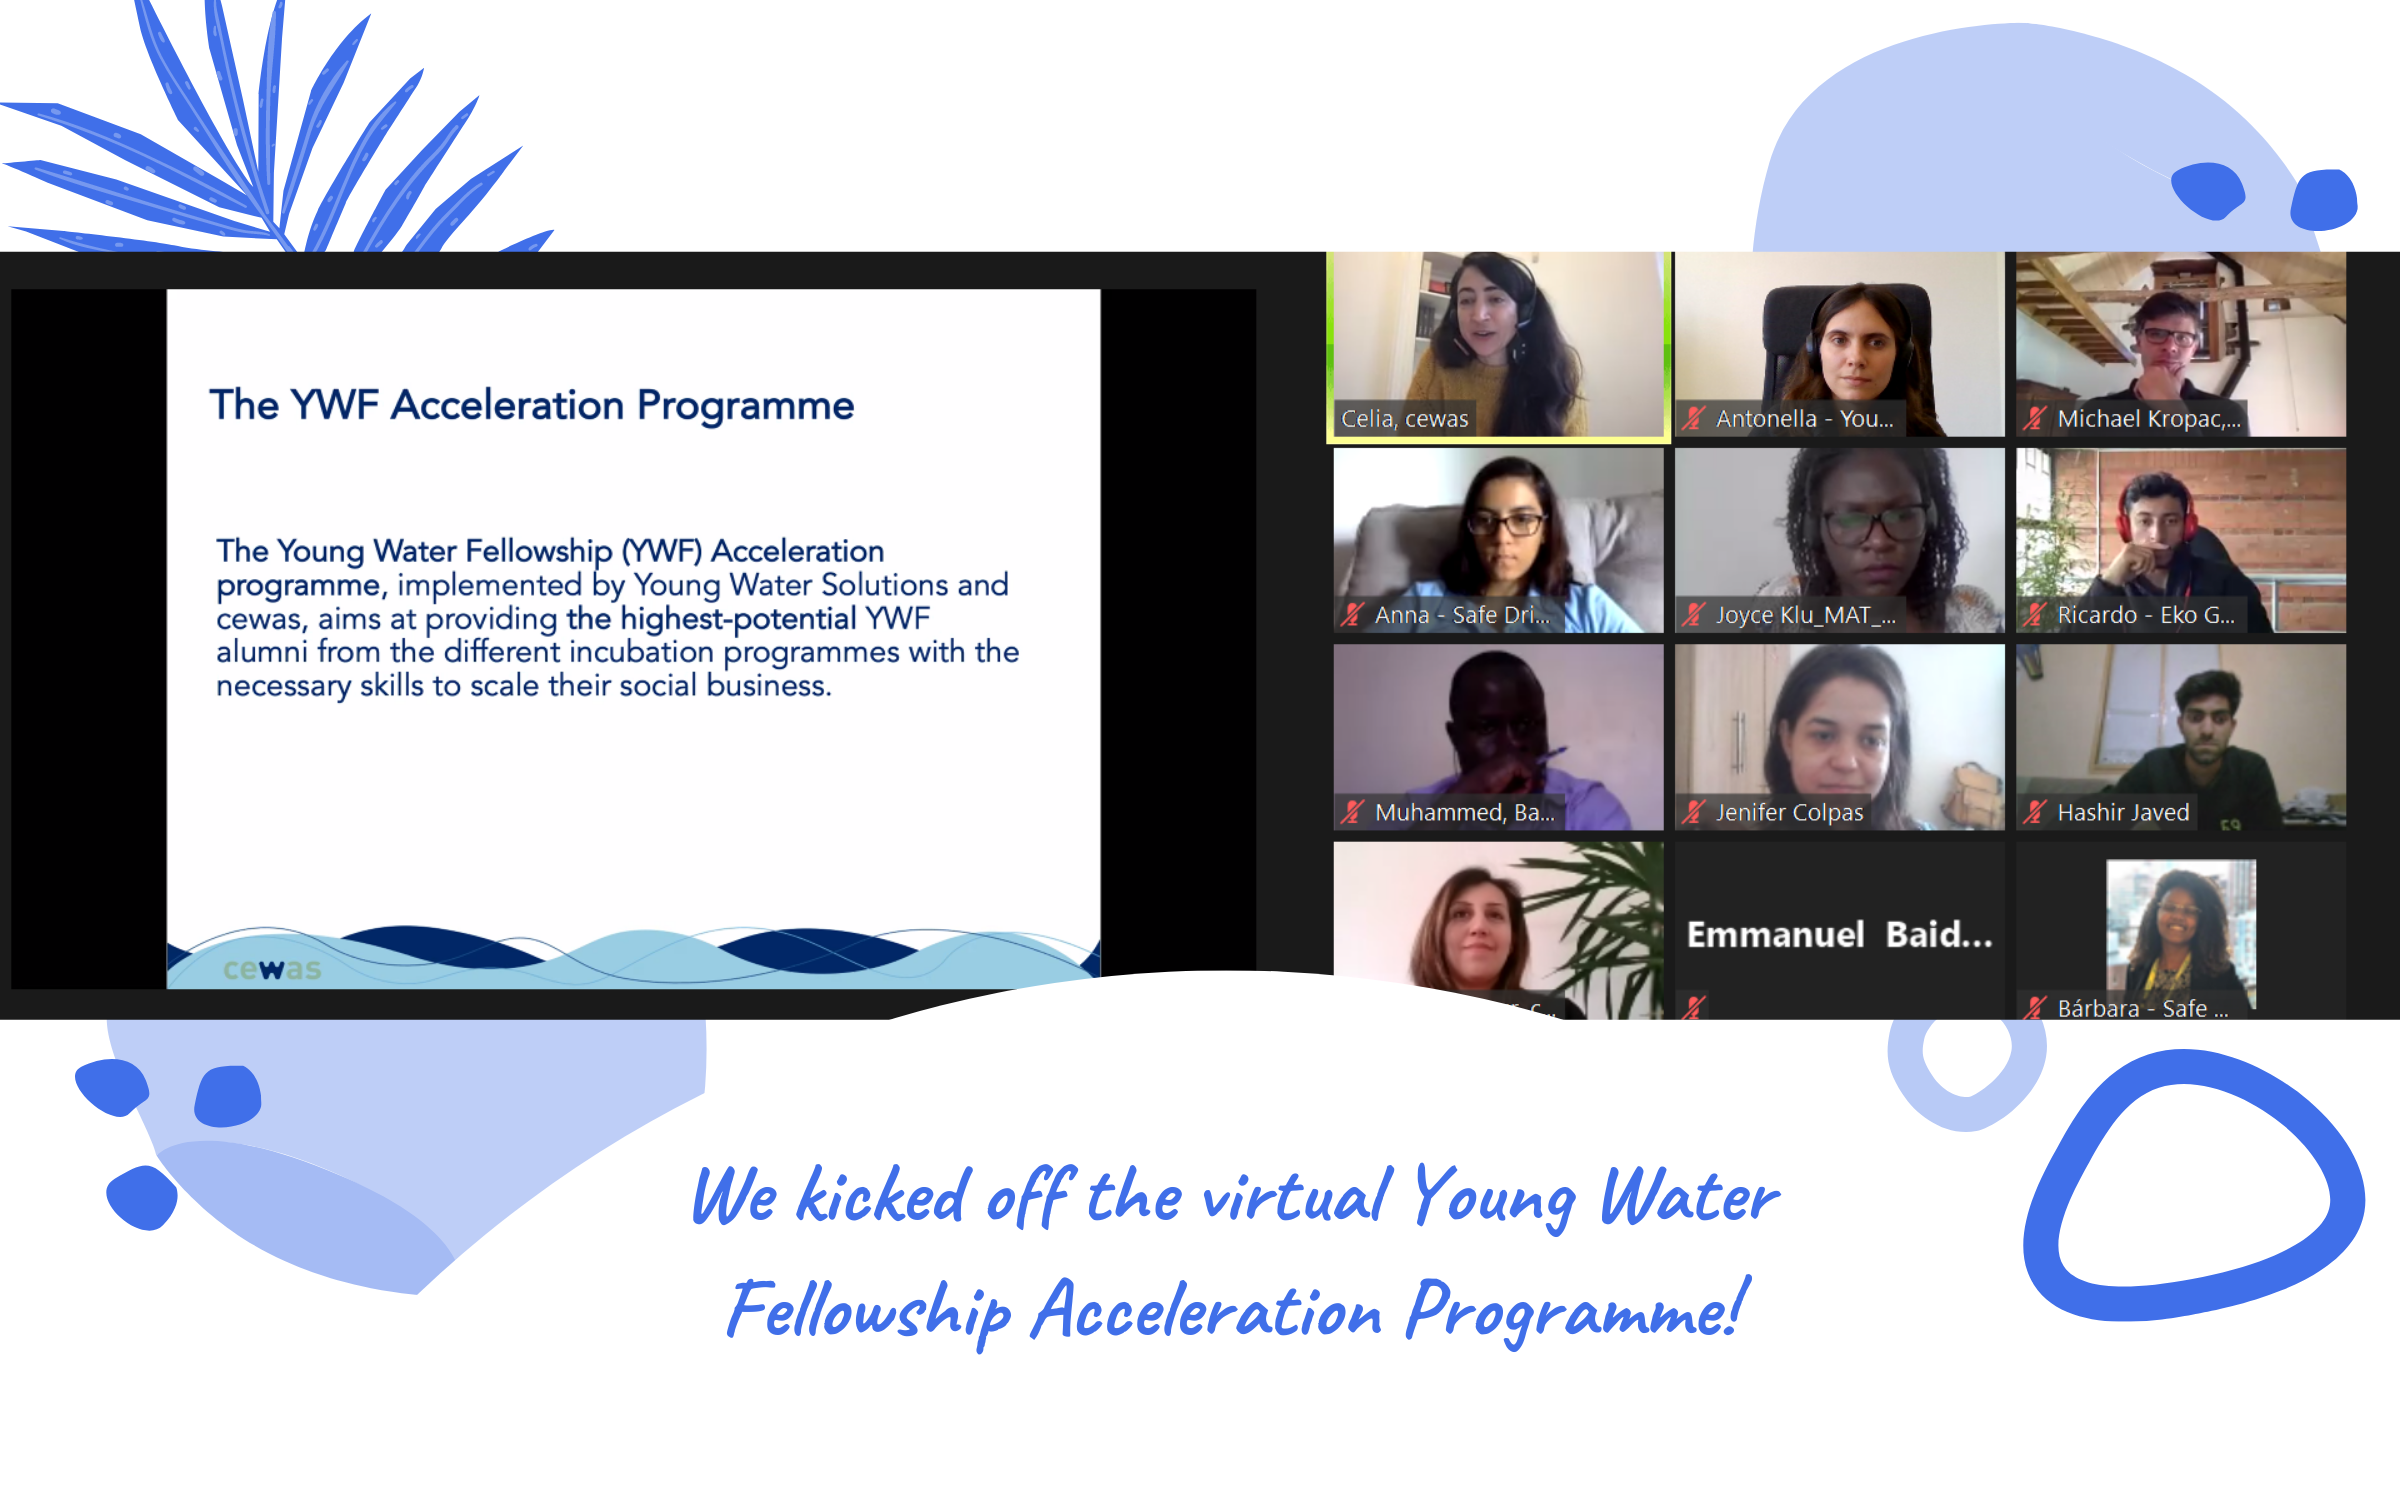 The Young Water Fellowship Acceleration programme